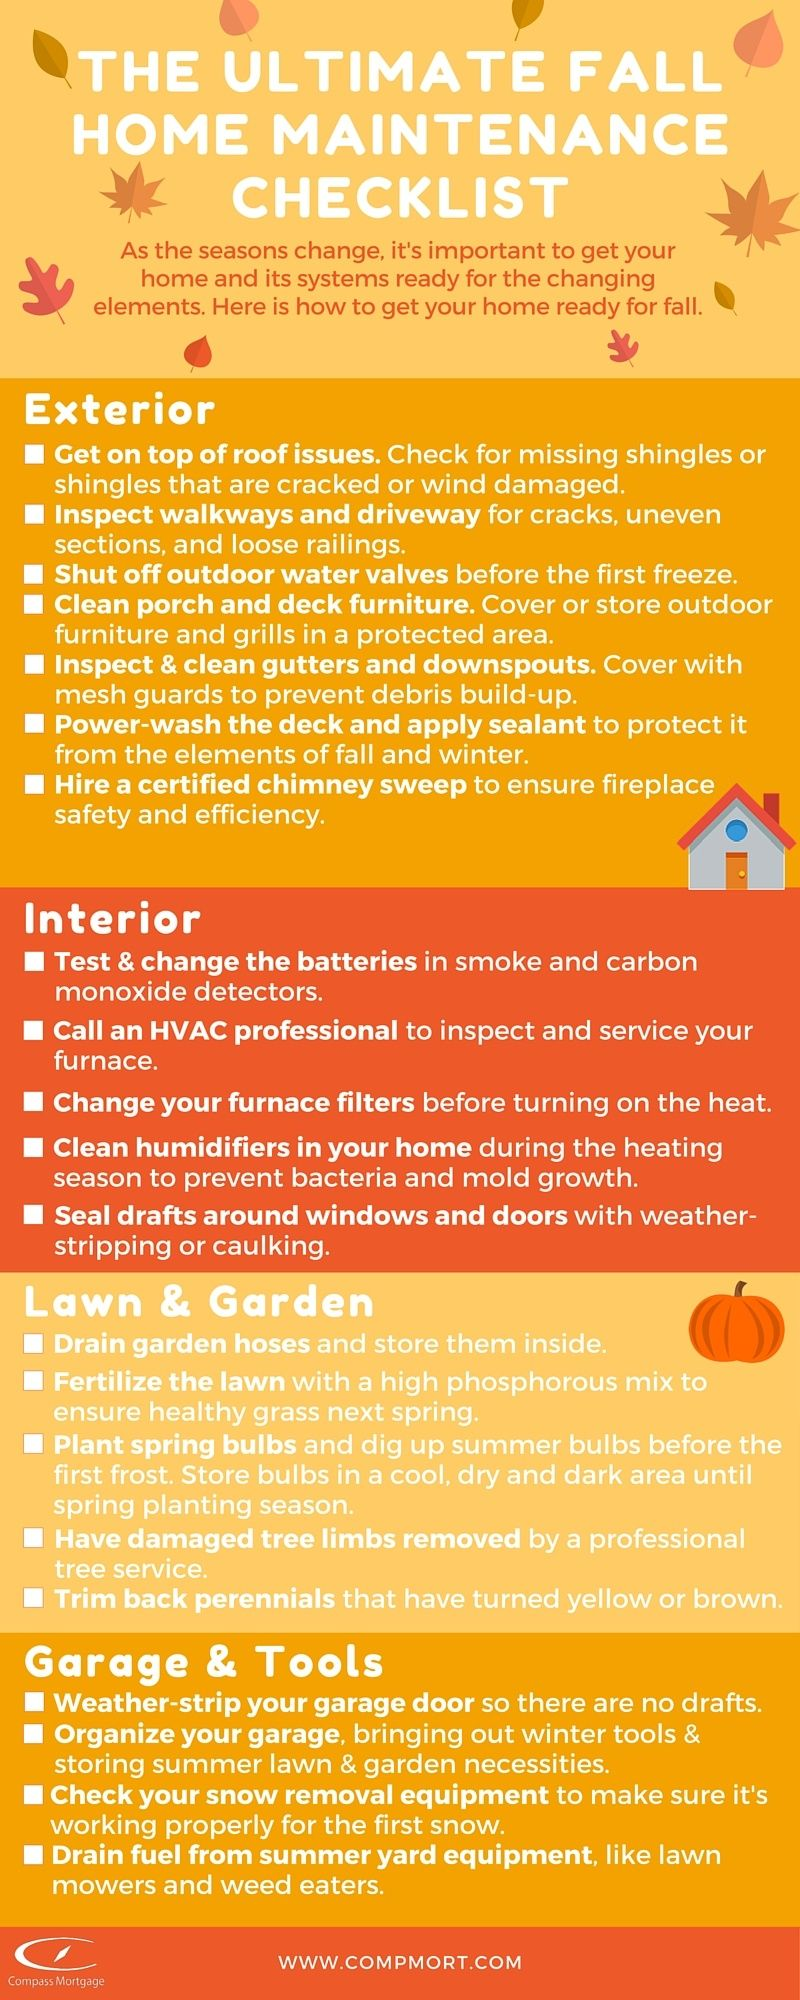 6 home maintenance projects this fall | home & garden